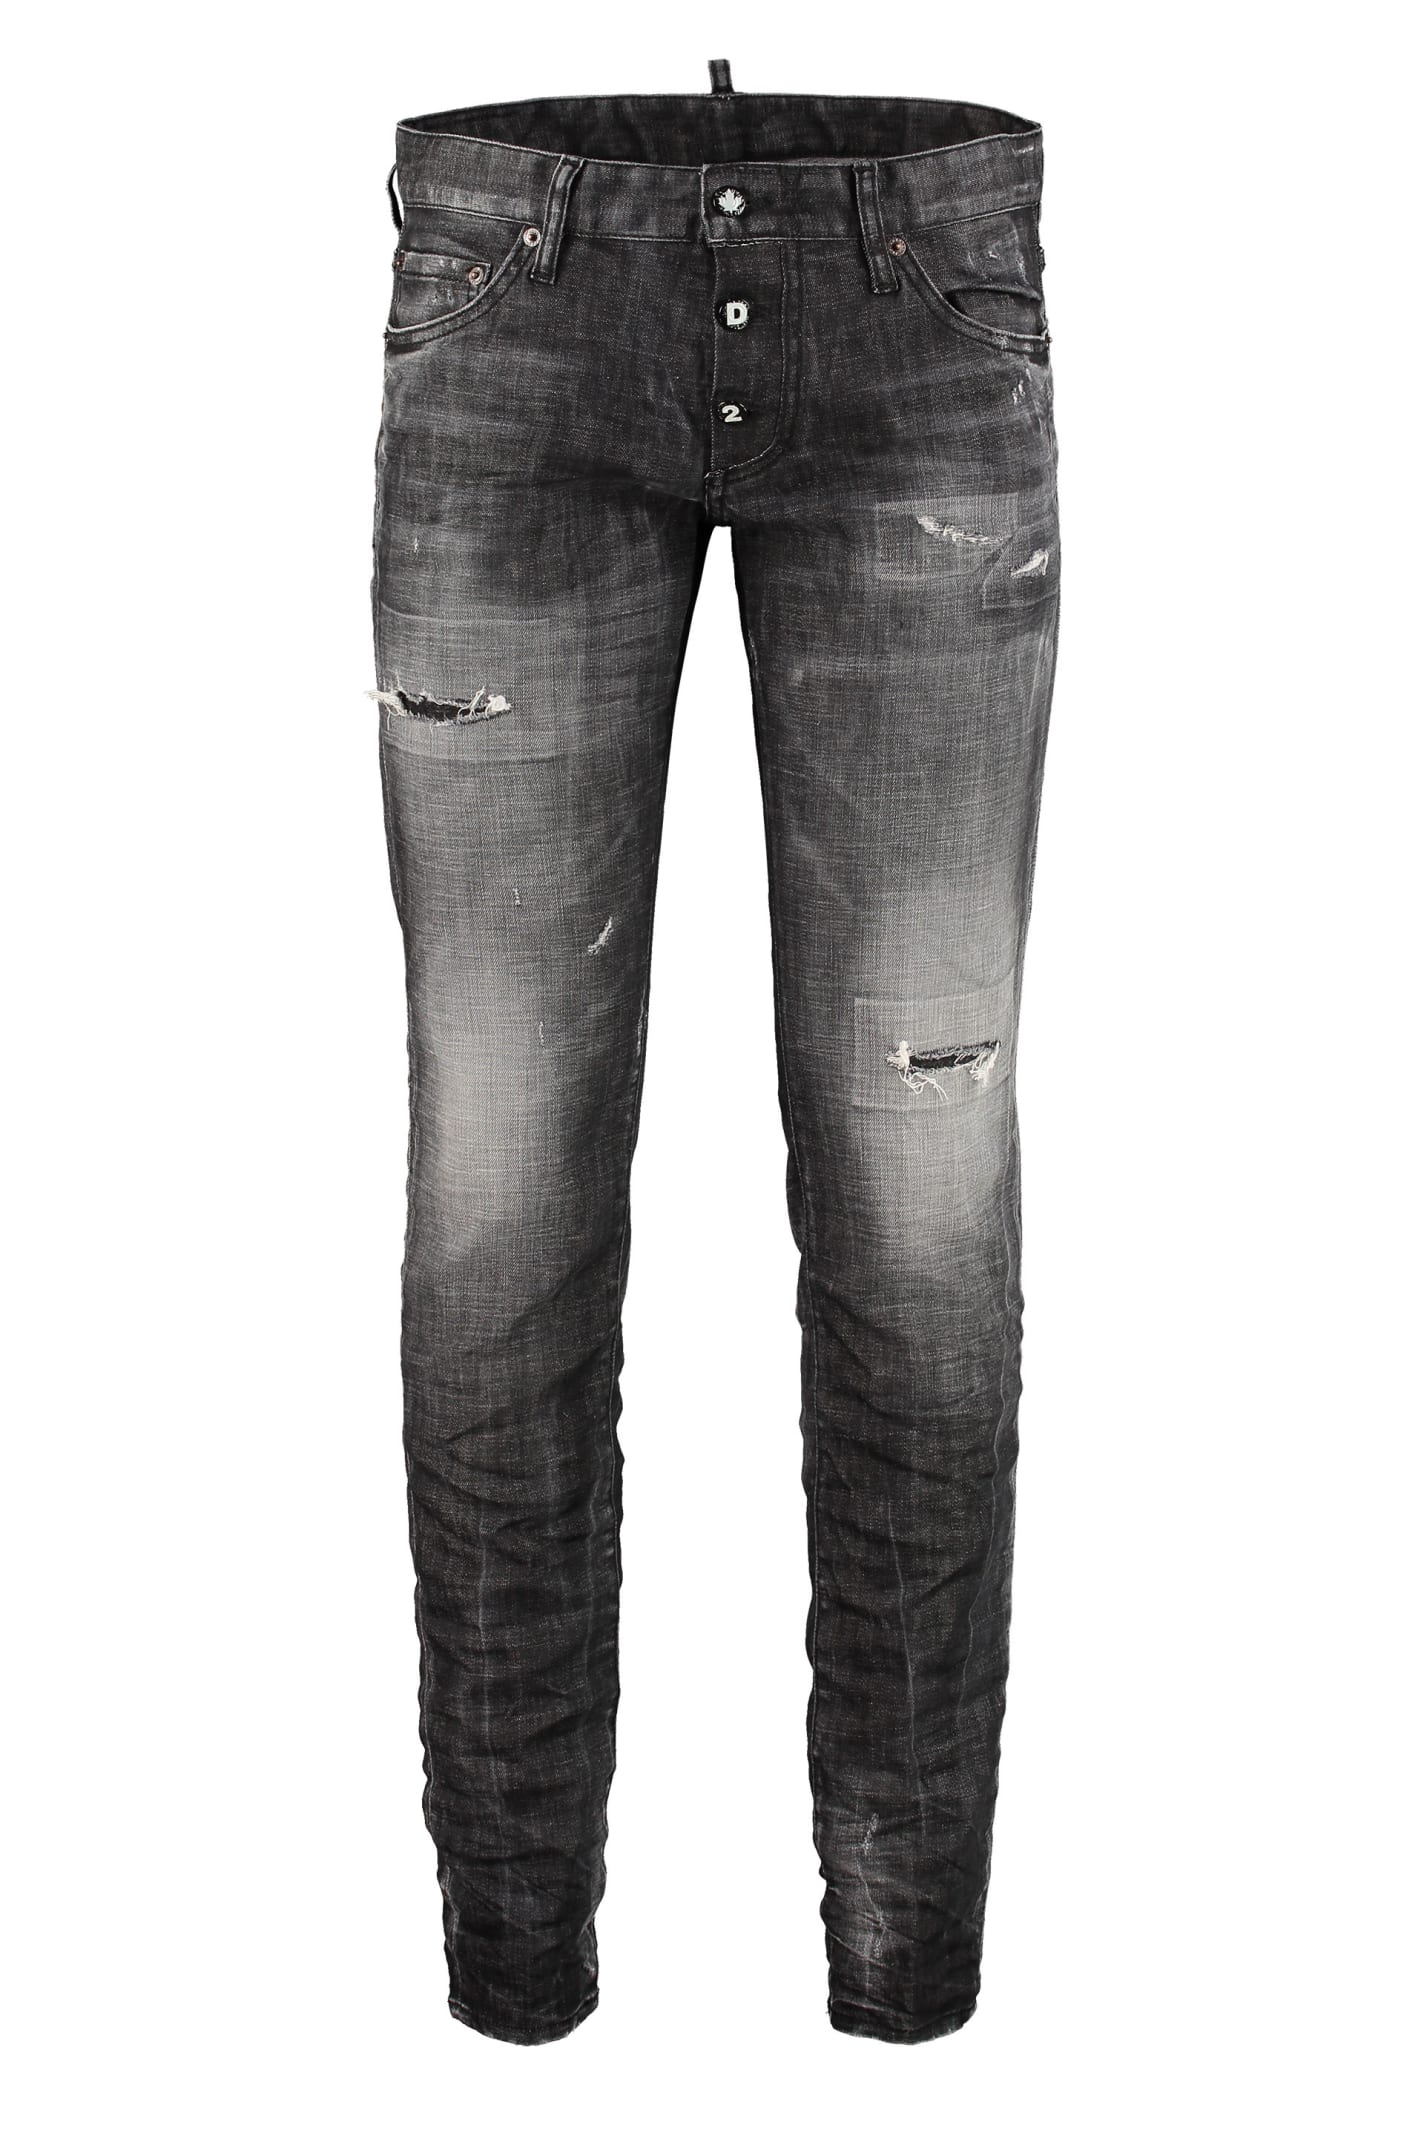 Dsquared2 Slim Jean 5-pocket Jeans